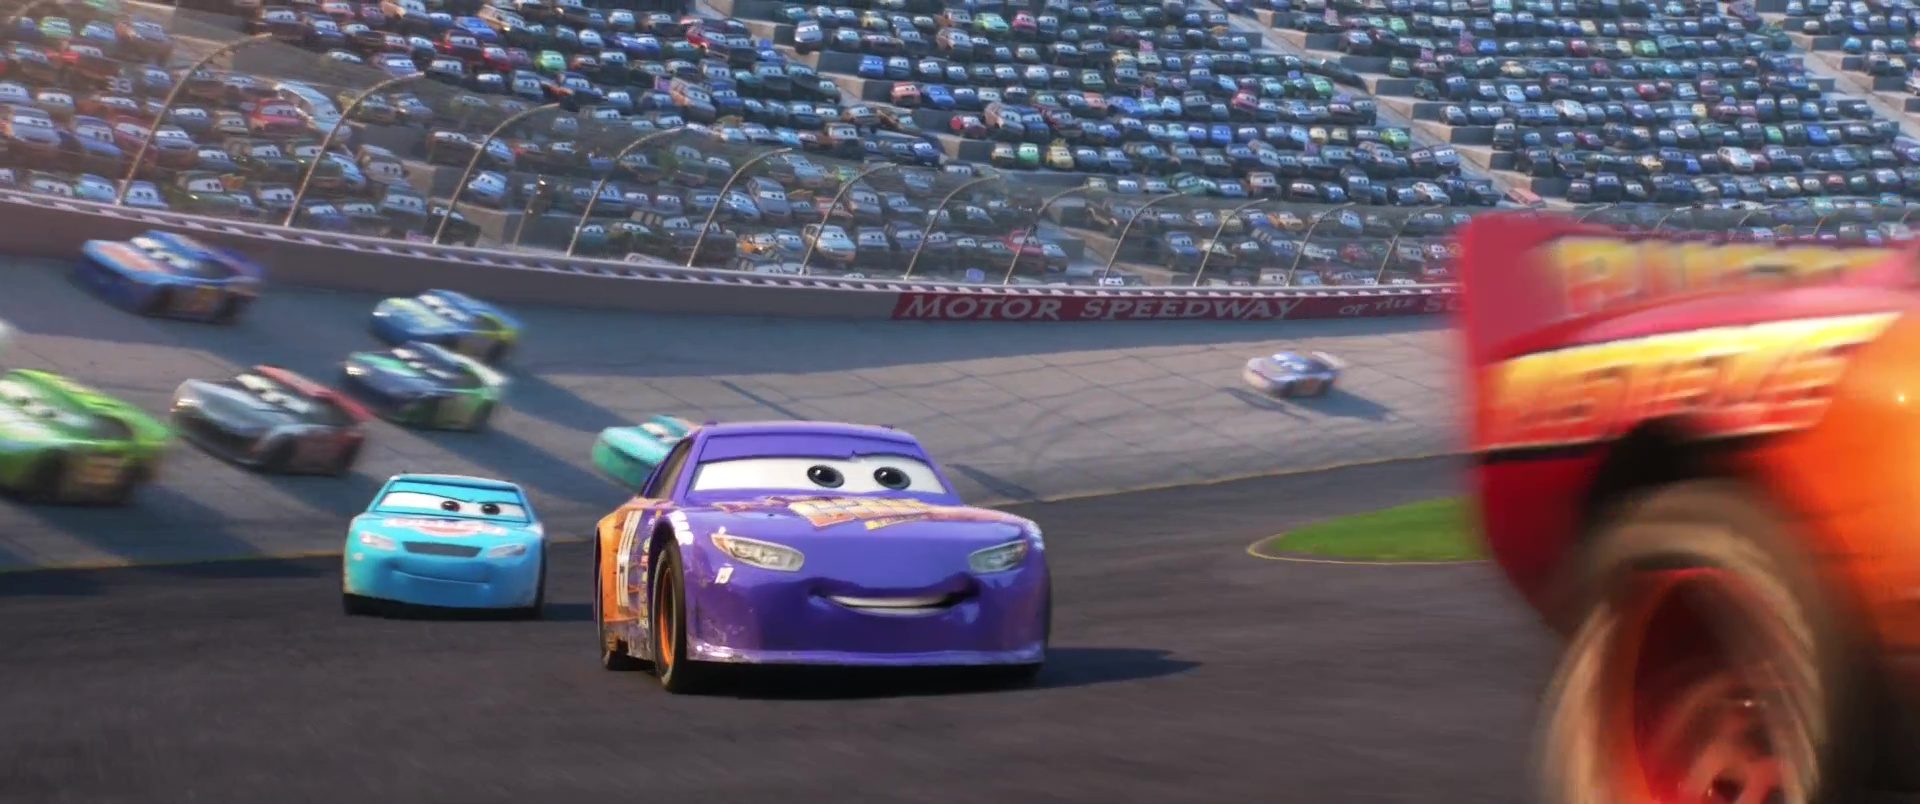 bobby-swift-personnage-cars-3-01